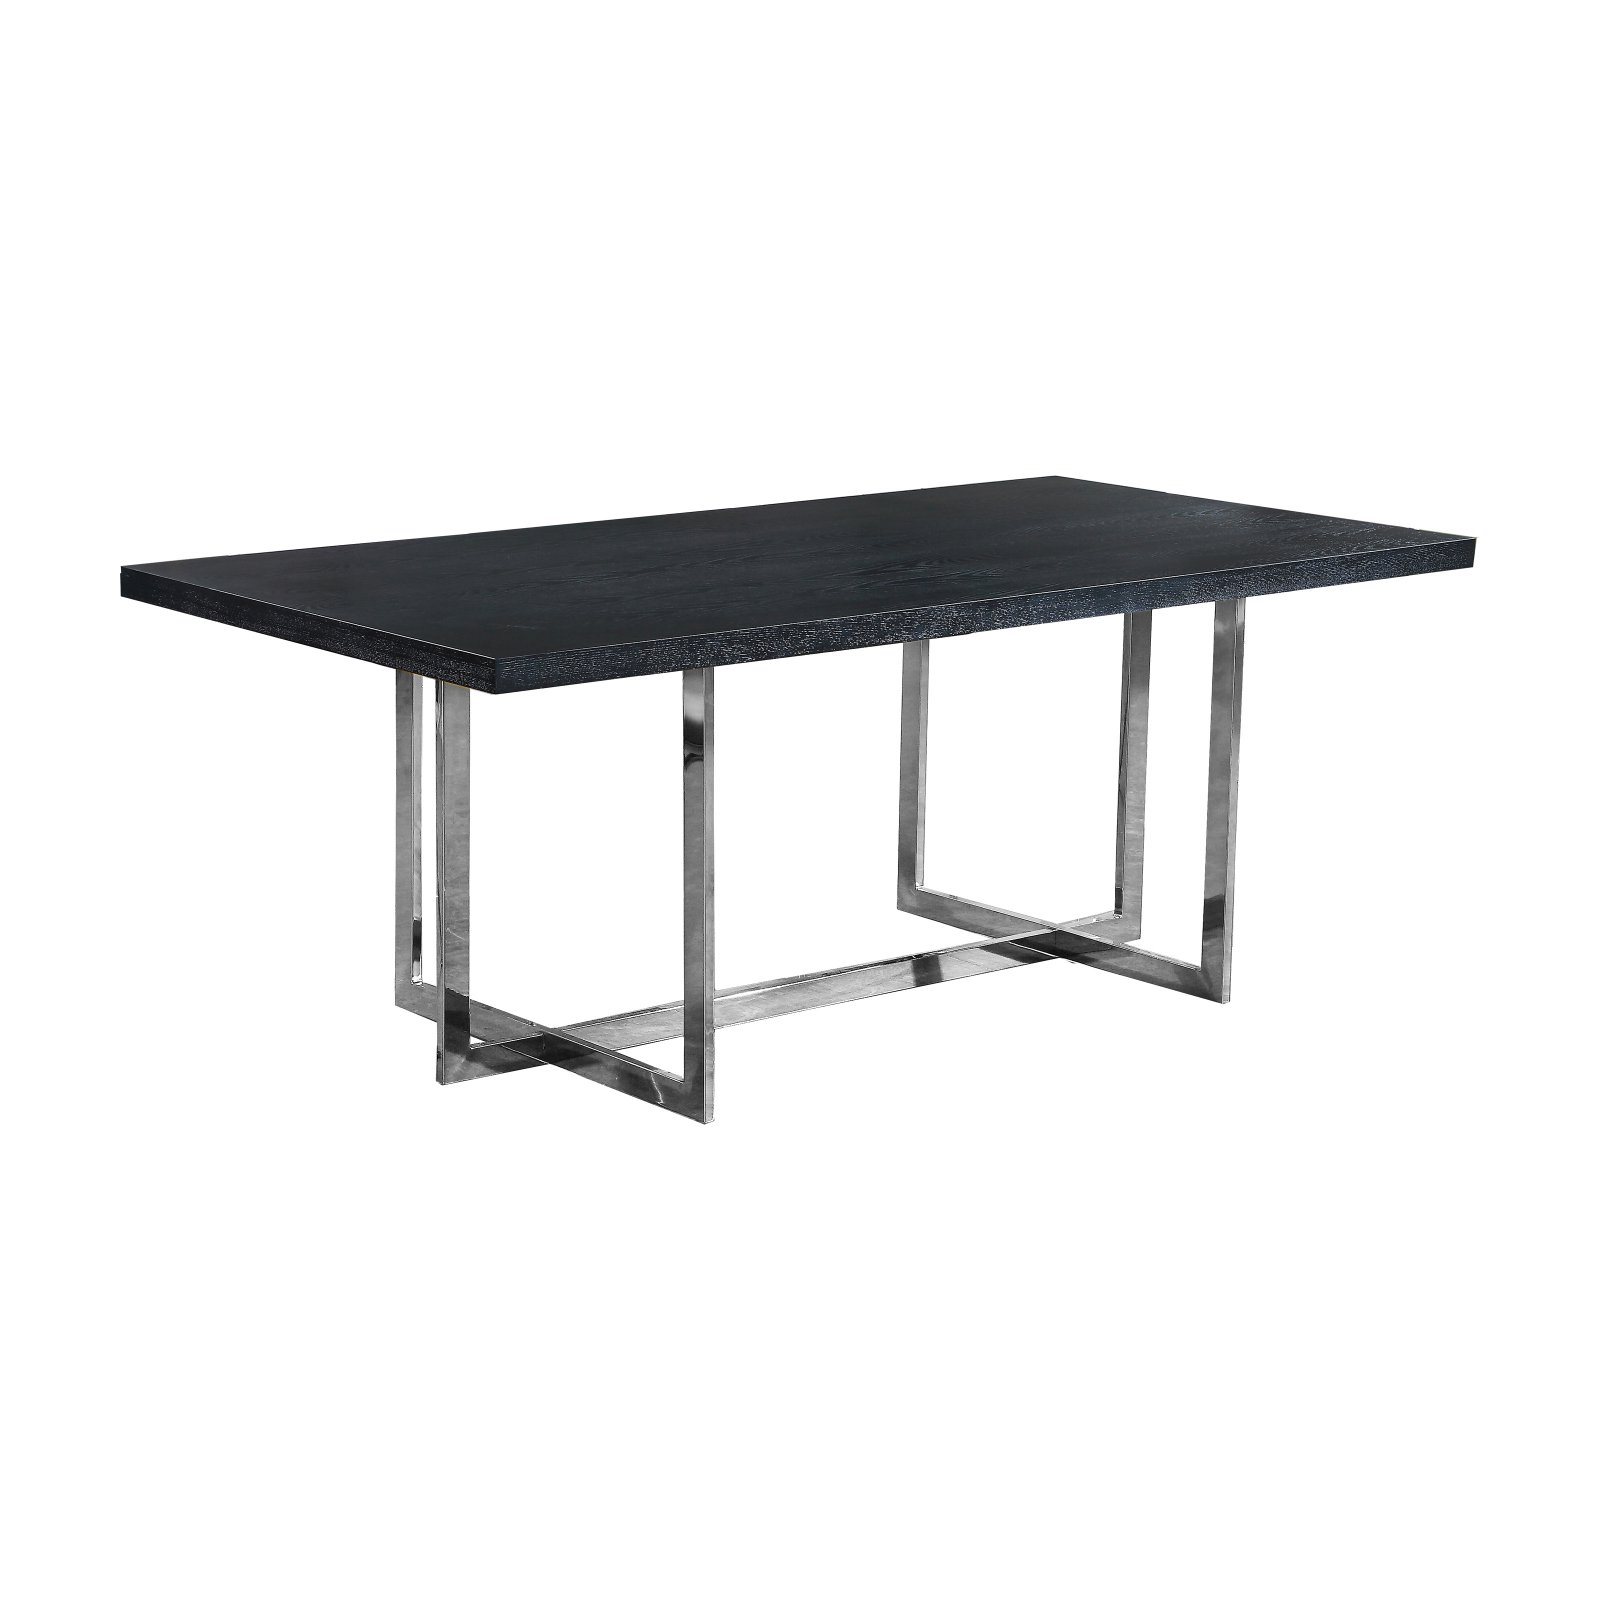 Meridian Furniture Inc Elle Rectangular Dining Table For Well Known Charcoal Transitional 6 Seating Rectangular Dining Tables (View 16 of 25)